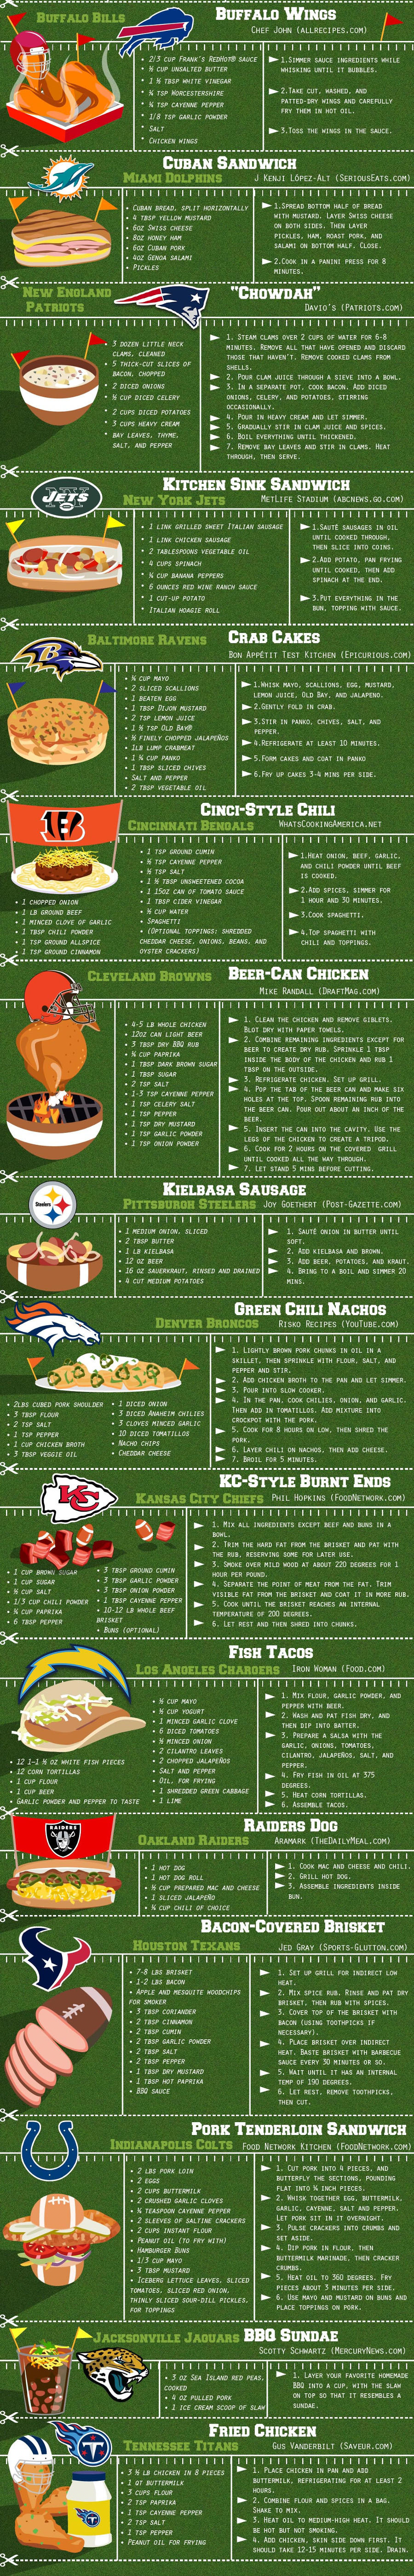 AFC Tailgating Finger Foods by Team